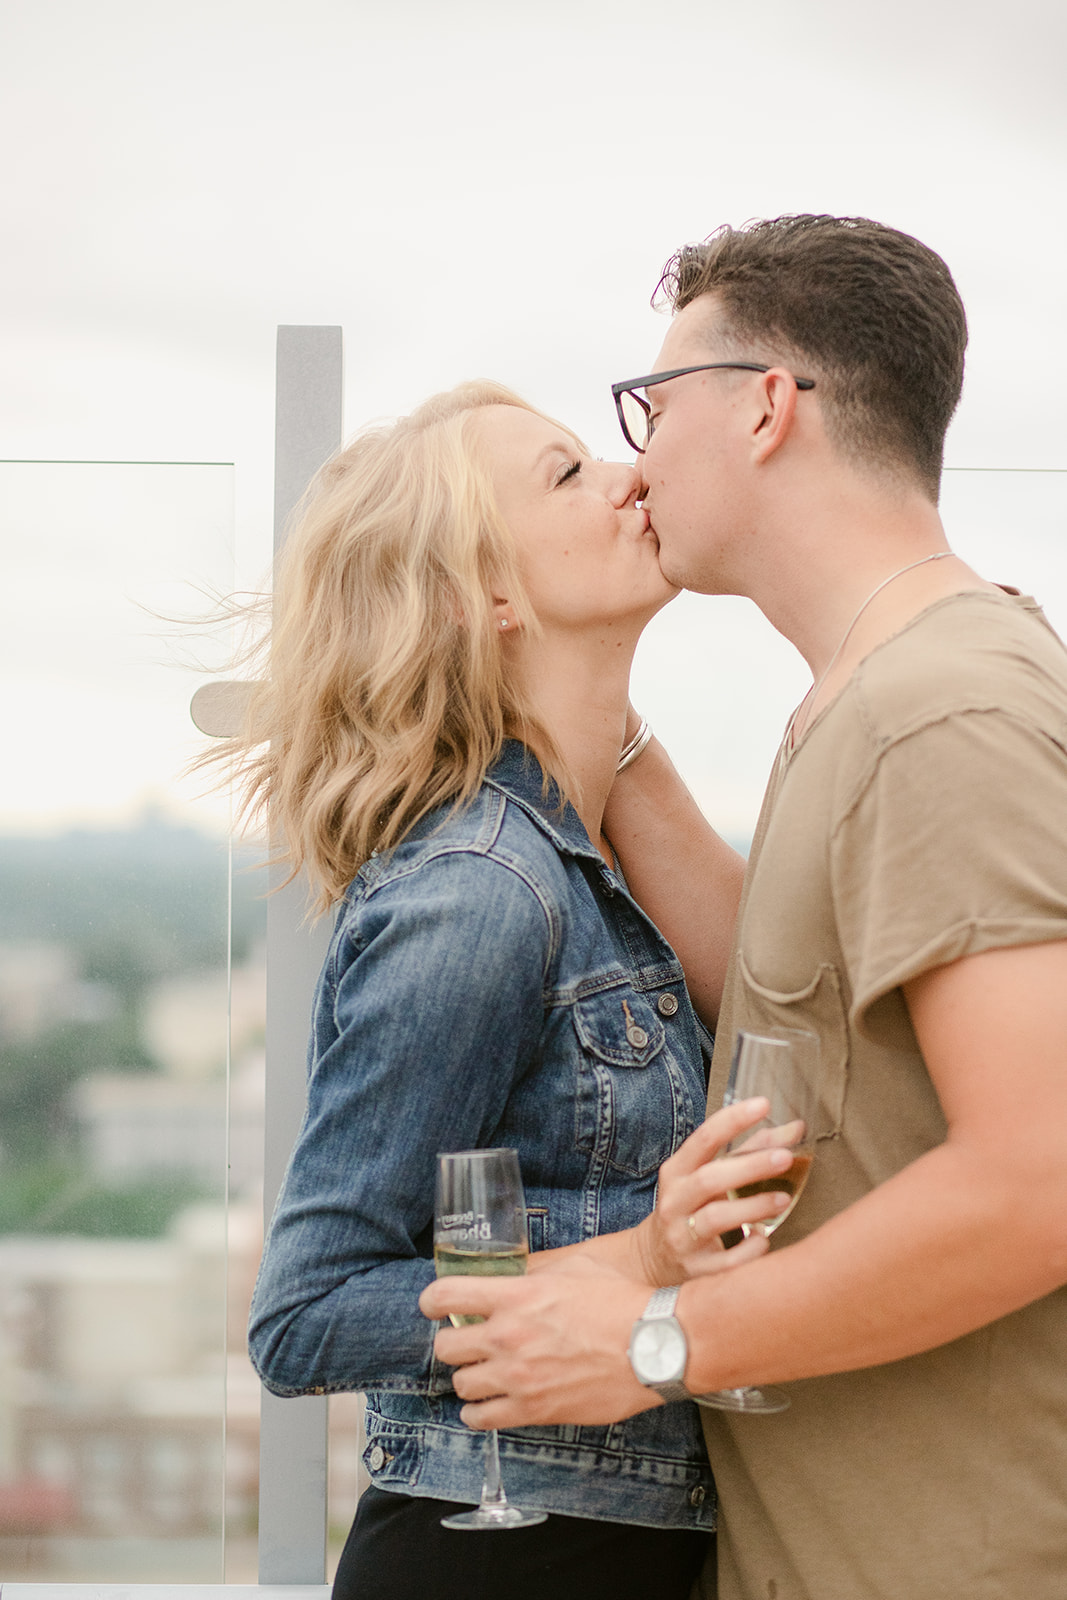 skyhouse lifestyle couple session on rooftop terrace photography